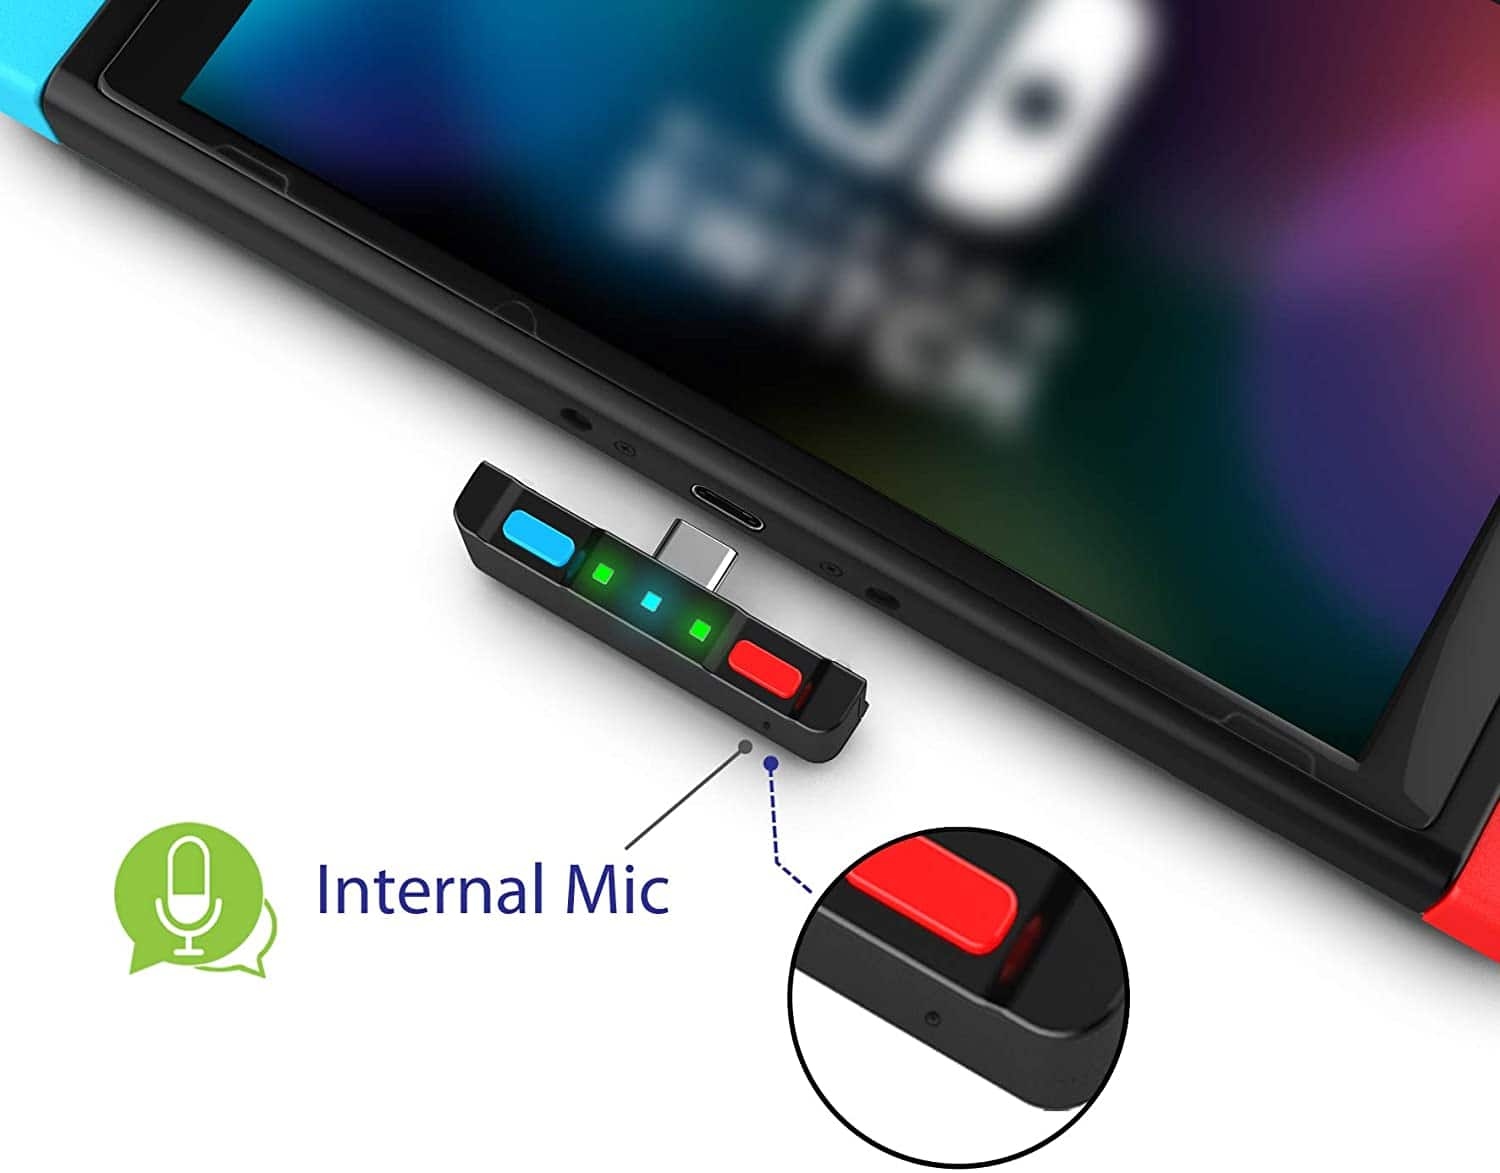 HomeSpot Dual aptX Bluetooth 5.0 Audio Transmitter with Qualcomm Chipset USB C  w/Mic for Nintendo Switch $24.49 AC Amazon